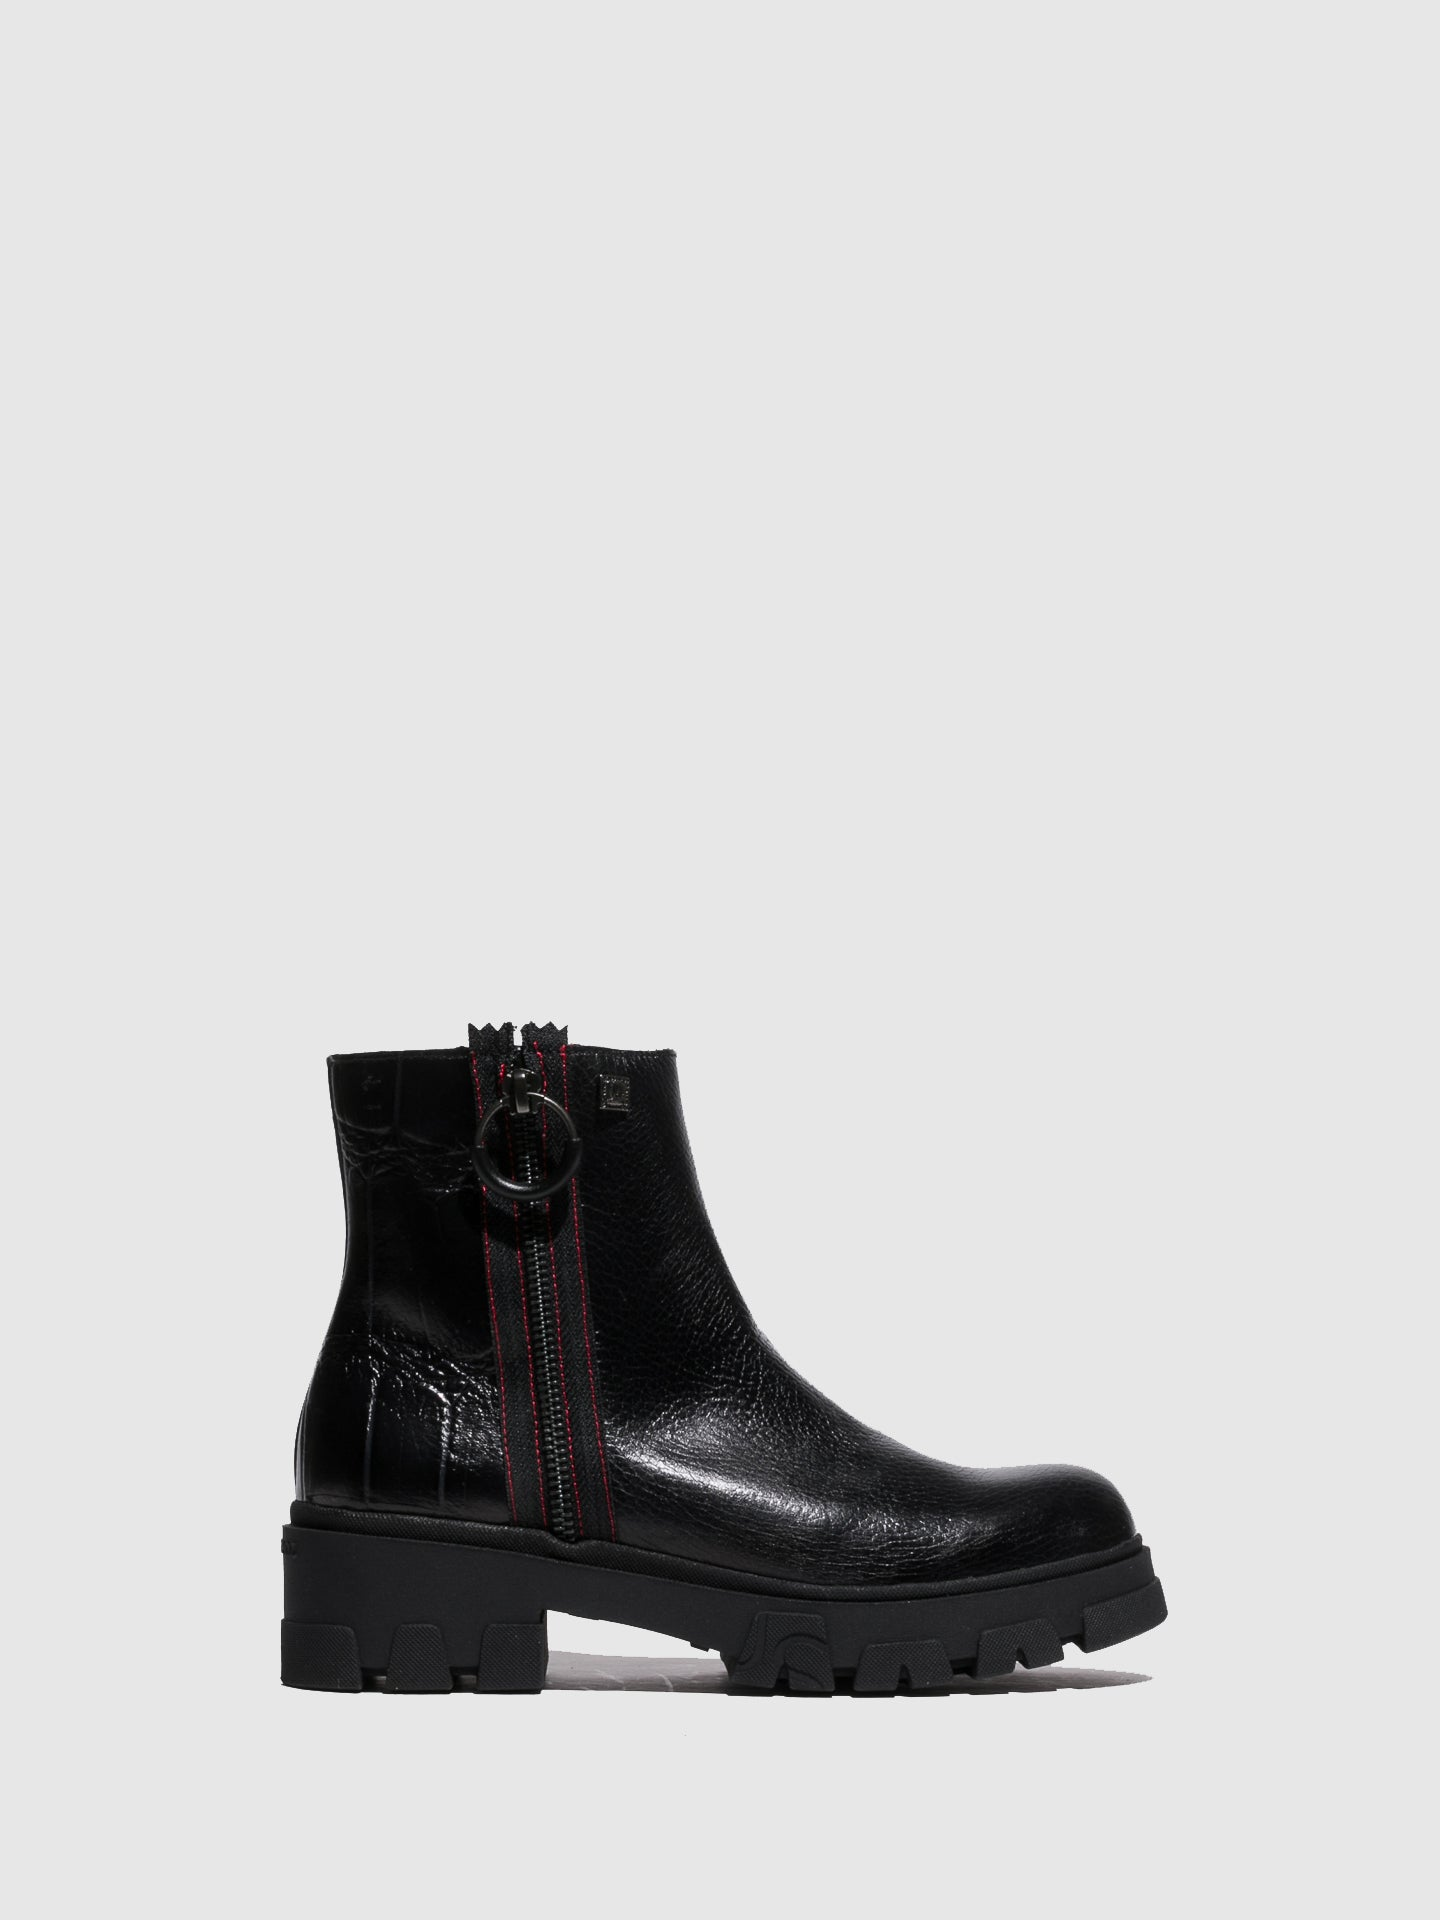 Jose Saenz Black Zip Up Ankle Boots